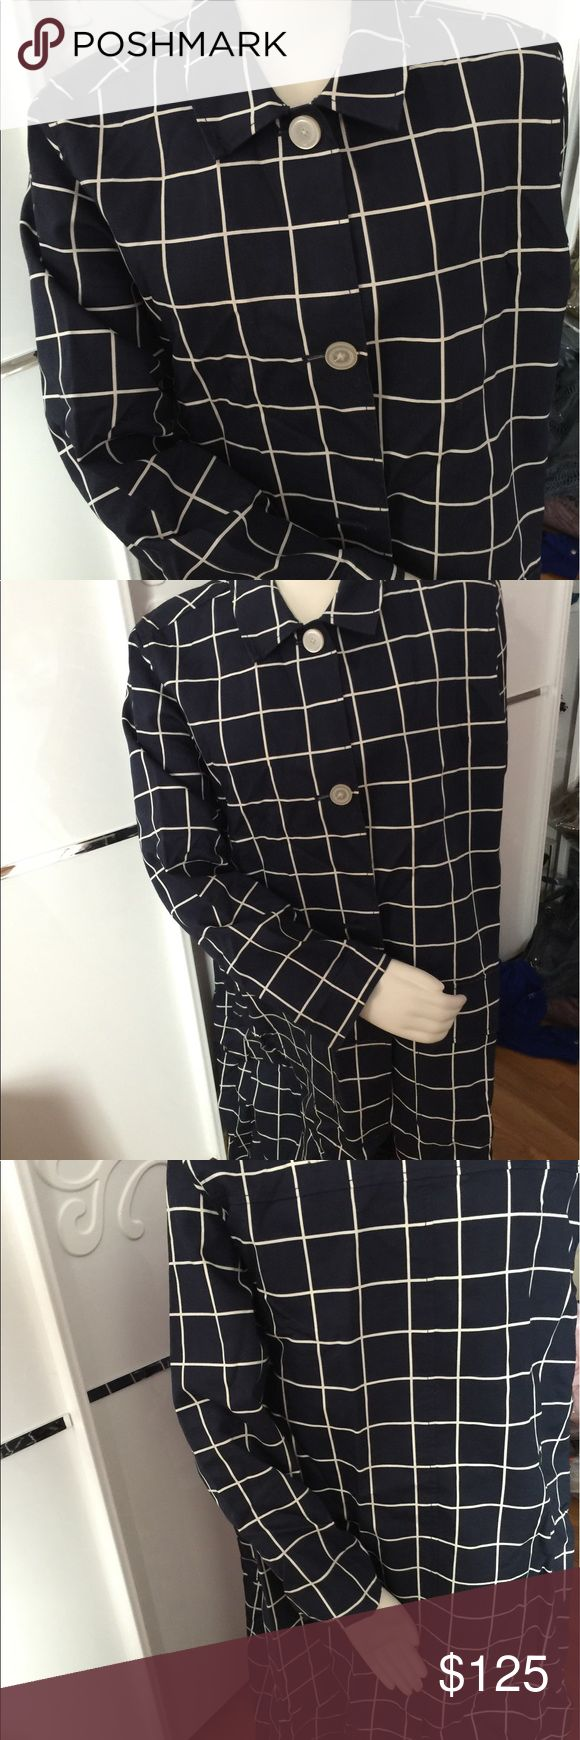 WOMEN RAIN COAT LizClaiborne Newyork SizeL/G SPORT RAIN COAT BEAUTIFUL!WOMEN RAIN COAT LizClaiborne Newyork SizeL/G Made in China I Like it But its to big for me so I want to sell it. Without tag its NEW LizClaiborne Jackets & Coats